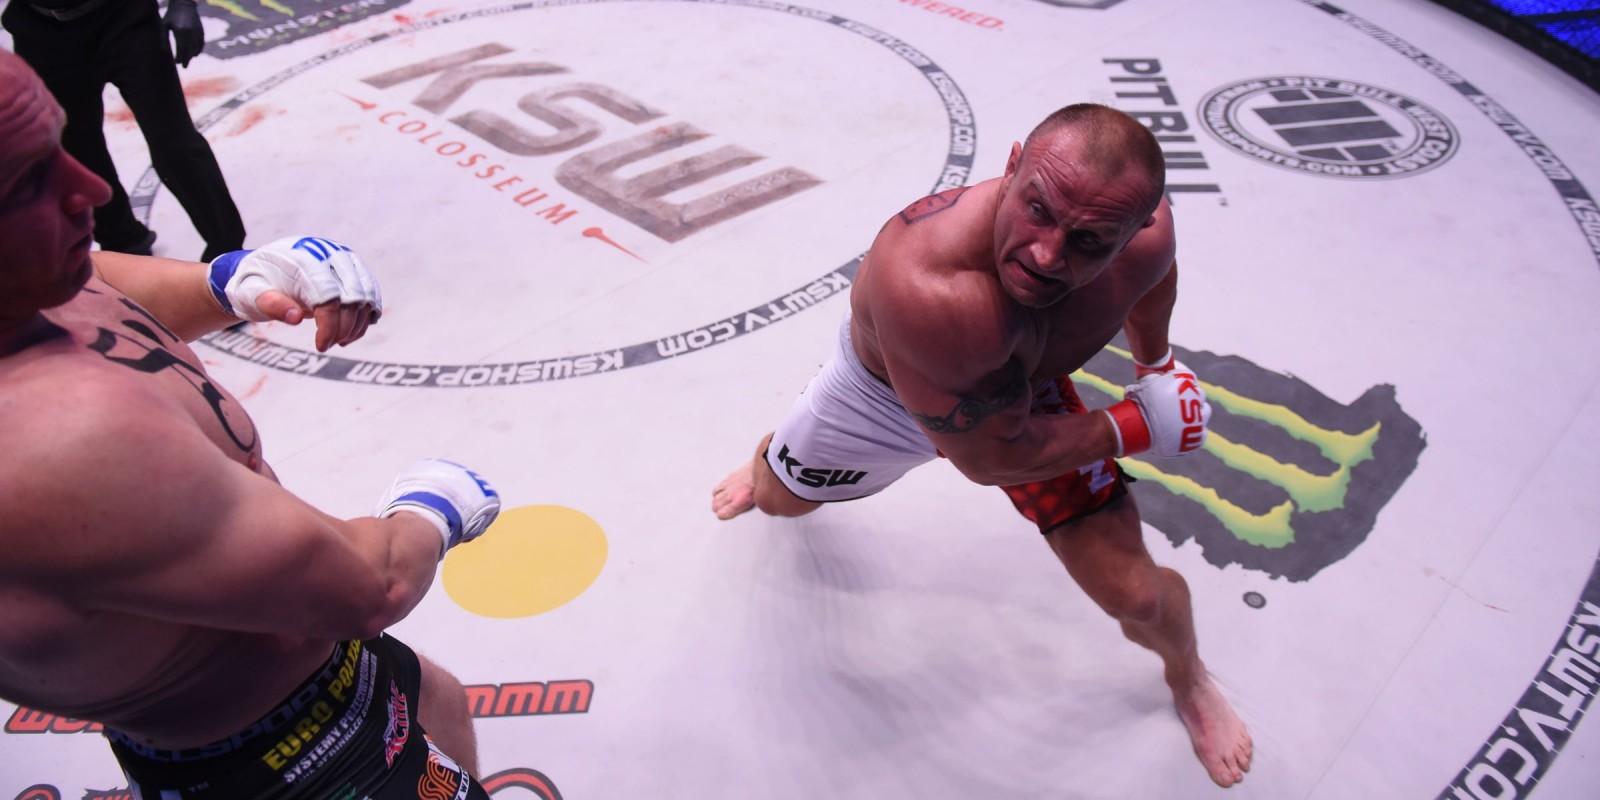 KSW39 Colosseum MMA gala at National Stadium in Warsaw - fight / action picture